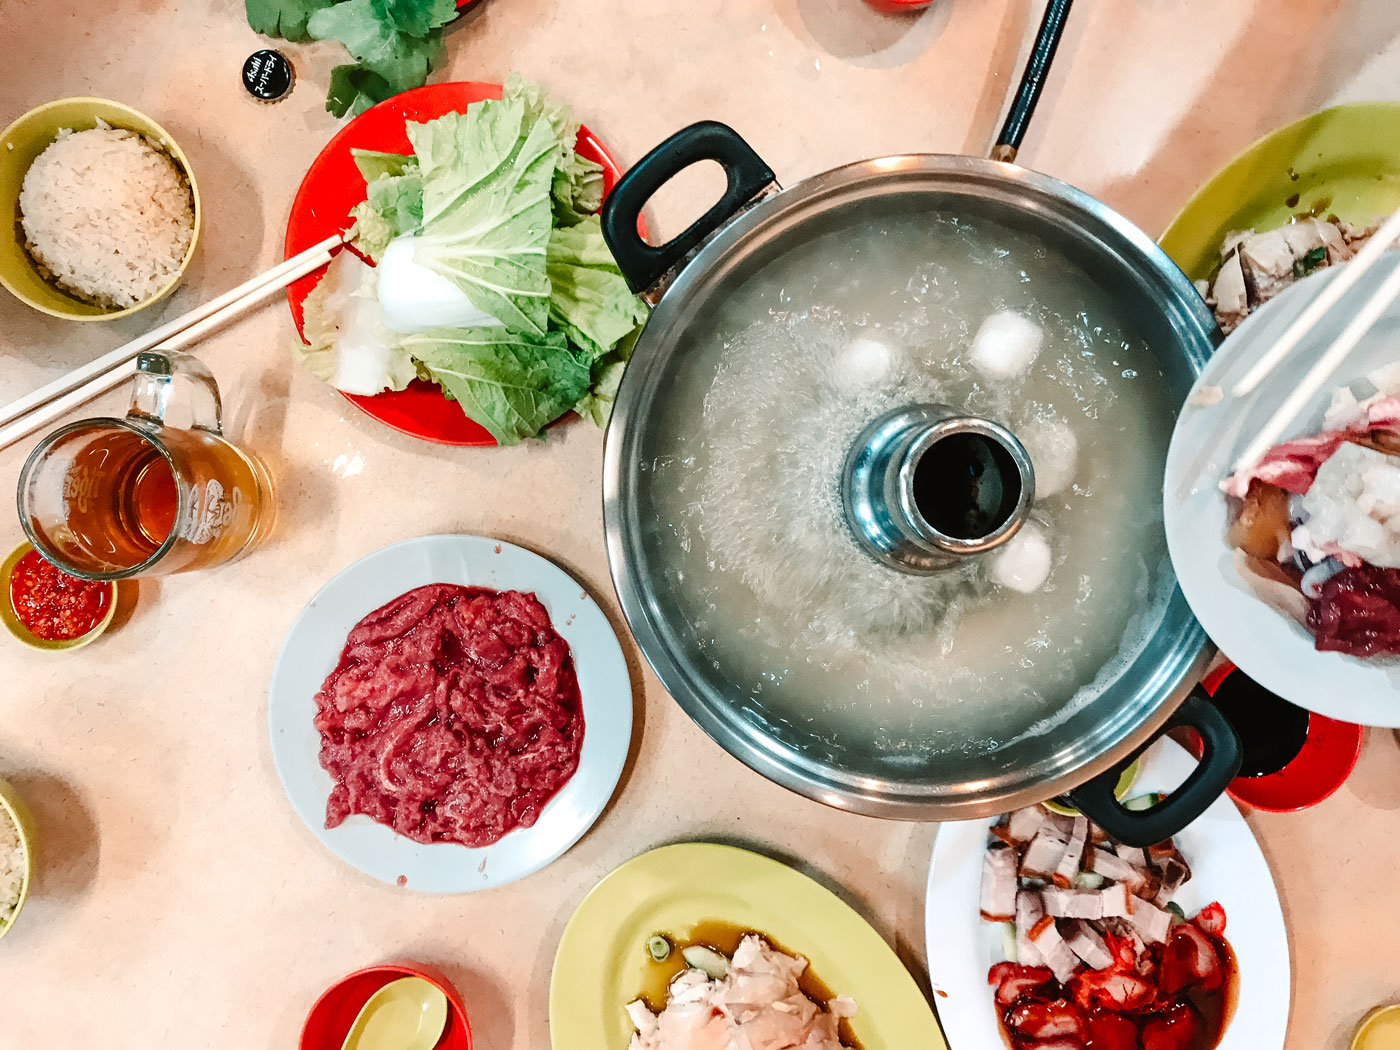 A boiling steamboat surrounded by raw vegetables and meats.